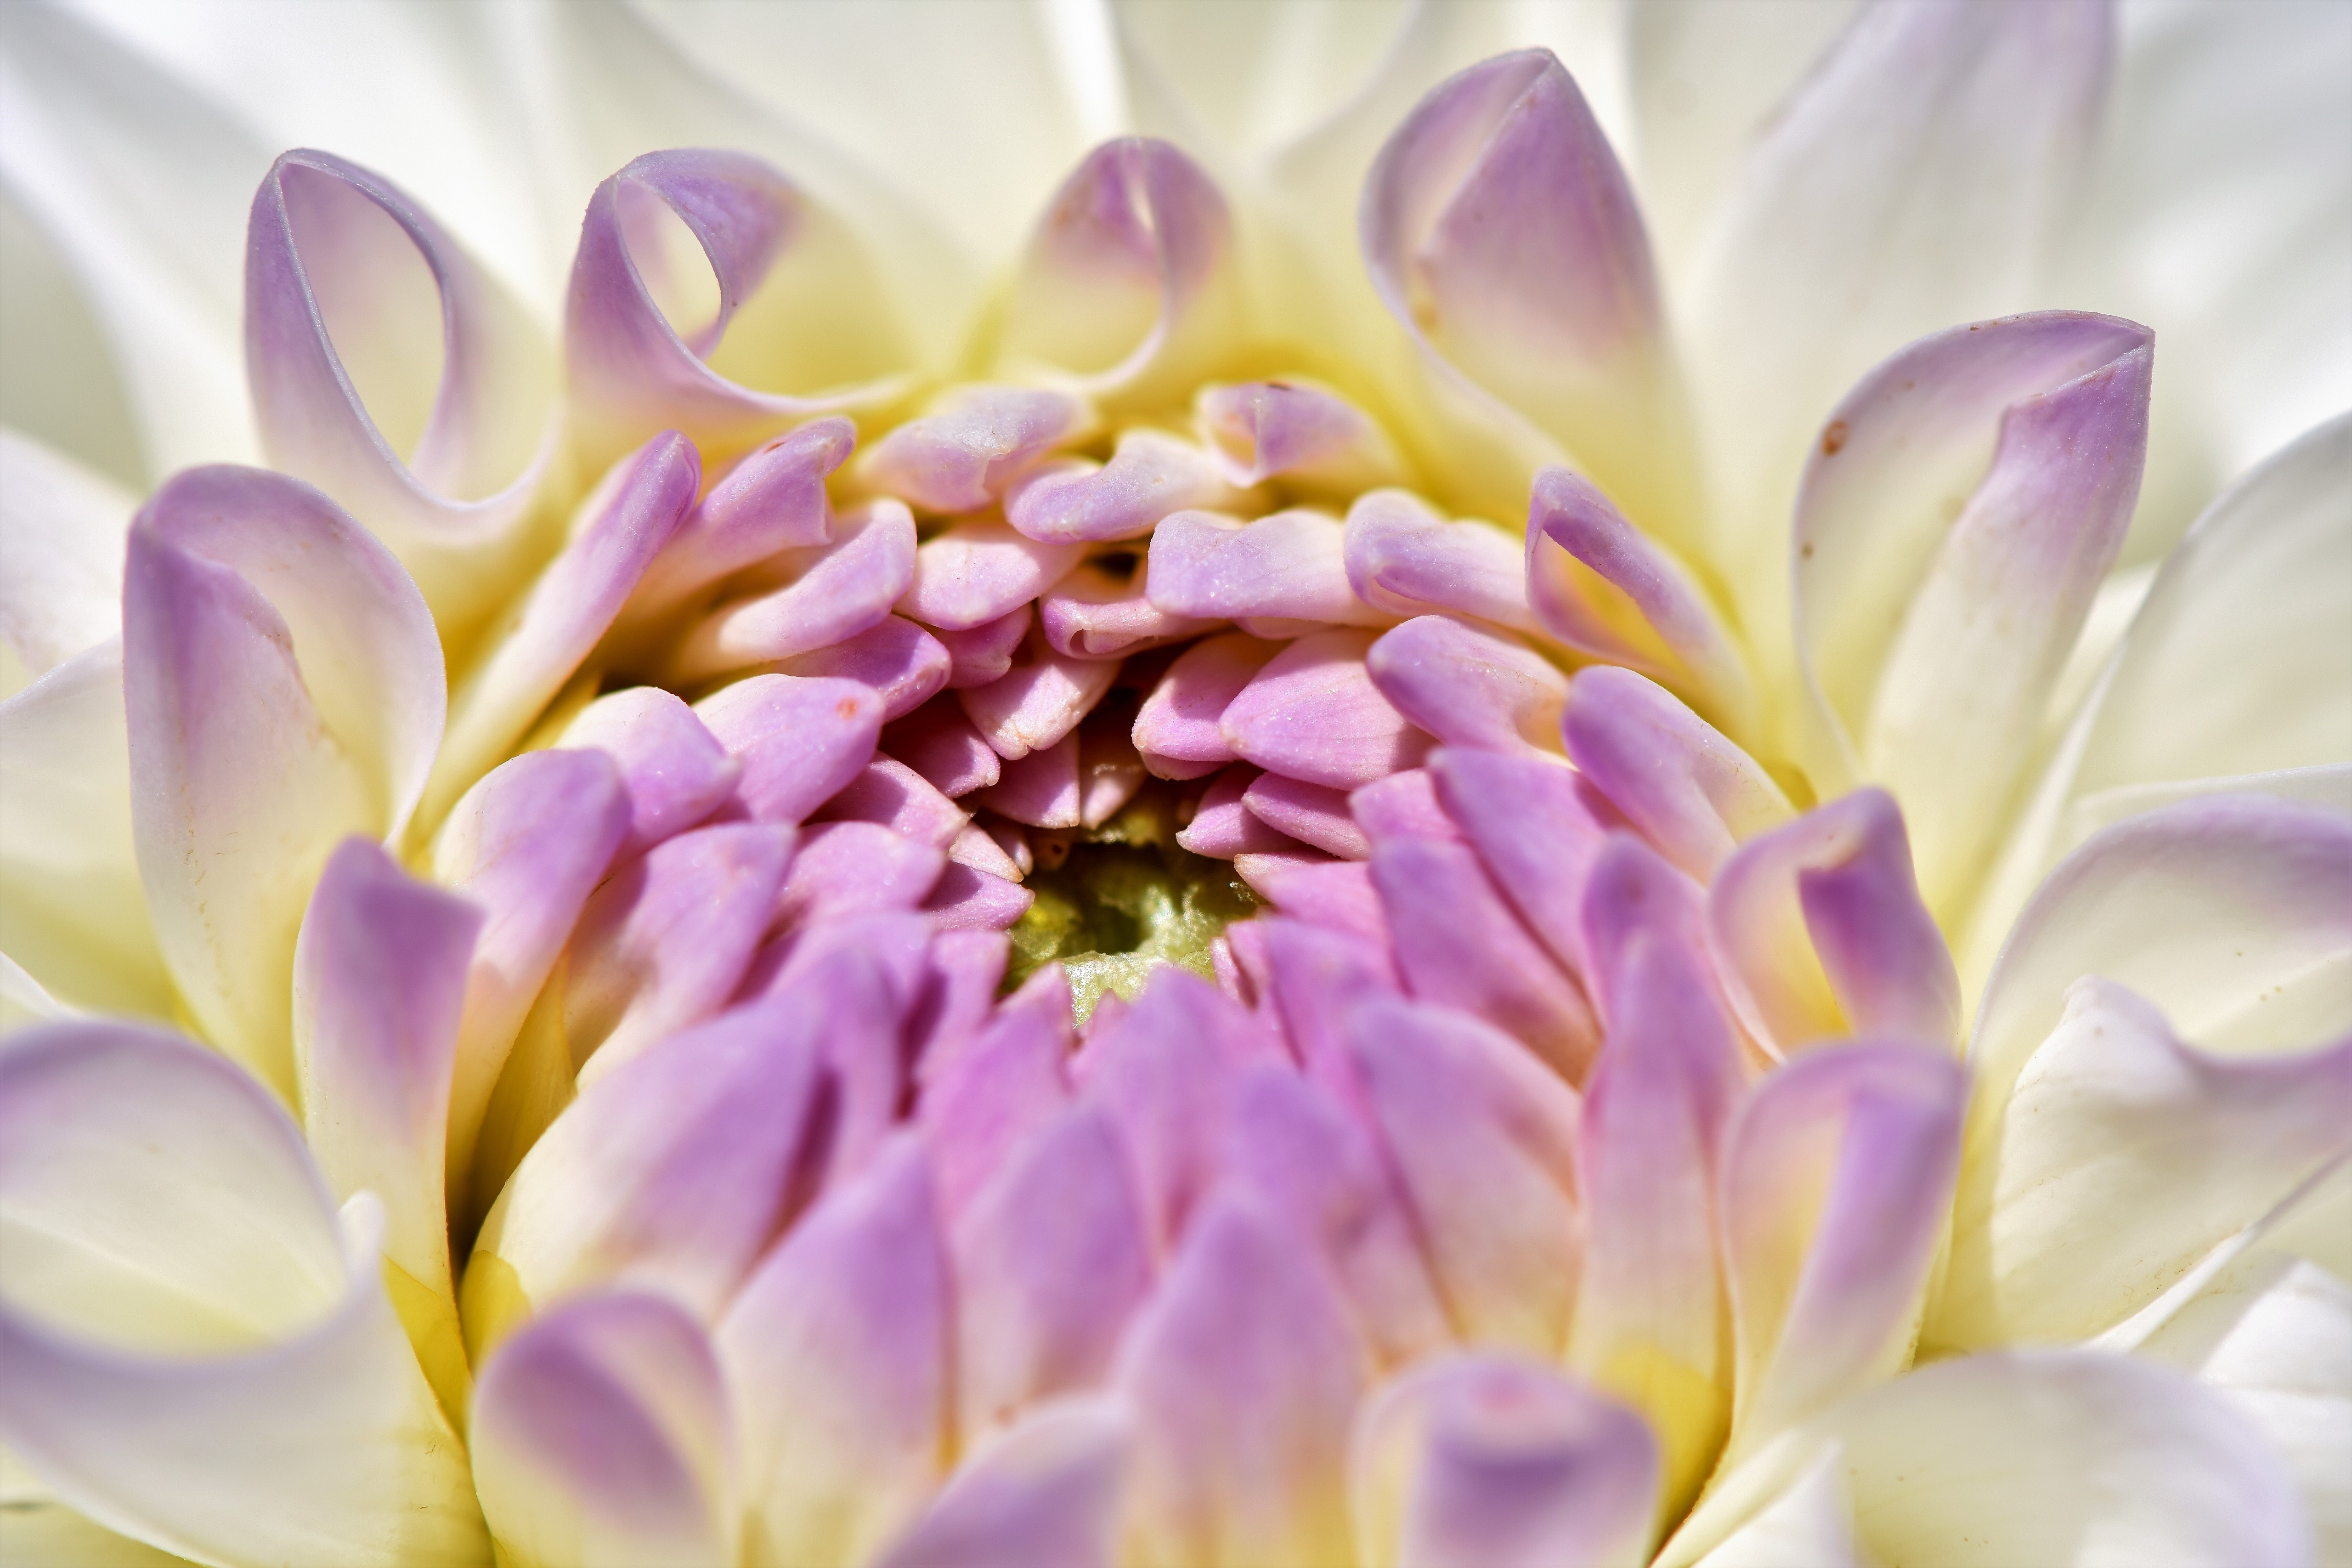 dahlia flower 4k 5k wallpaper